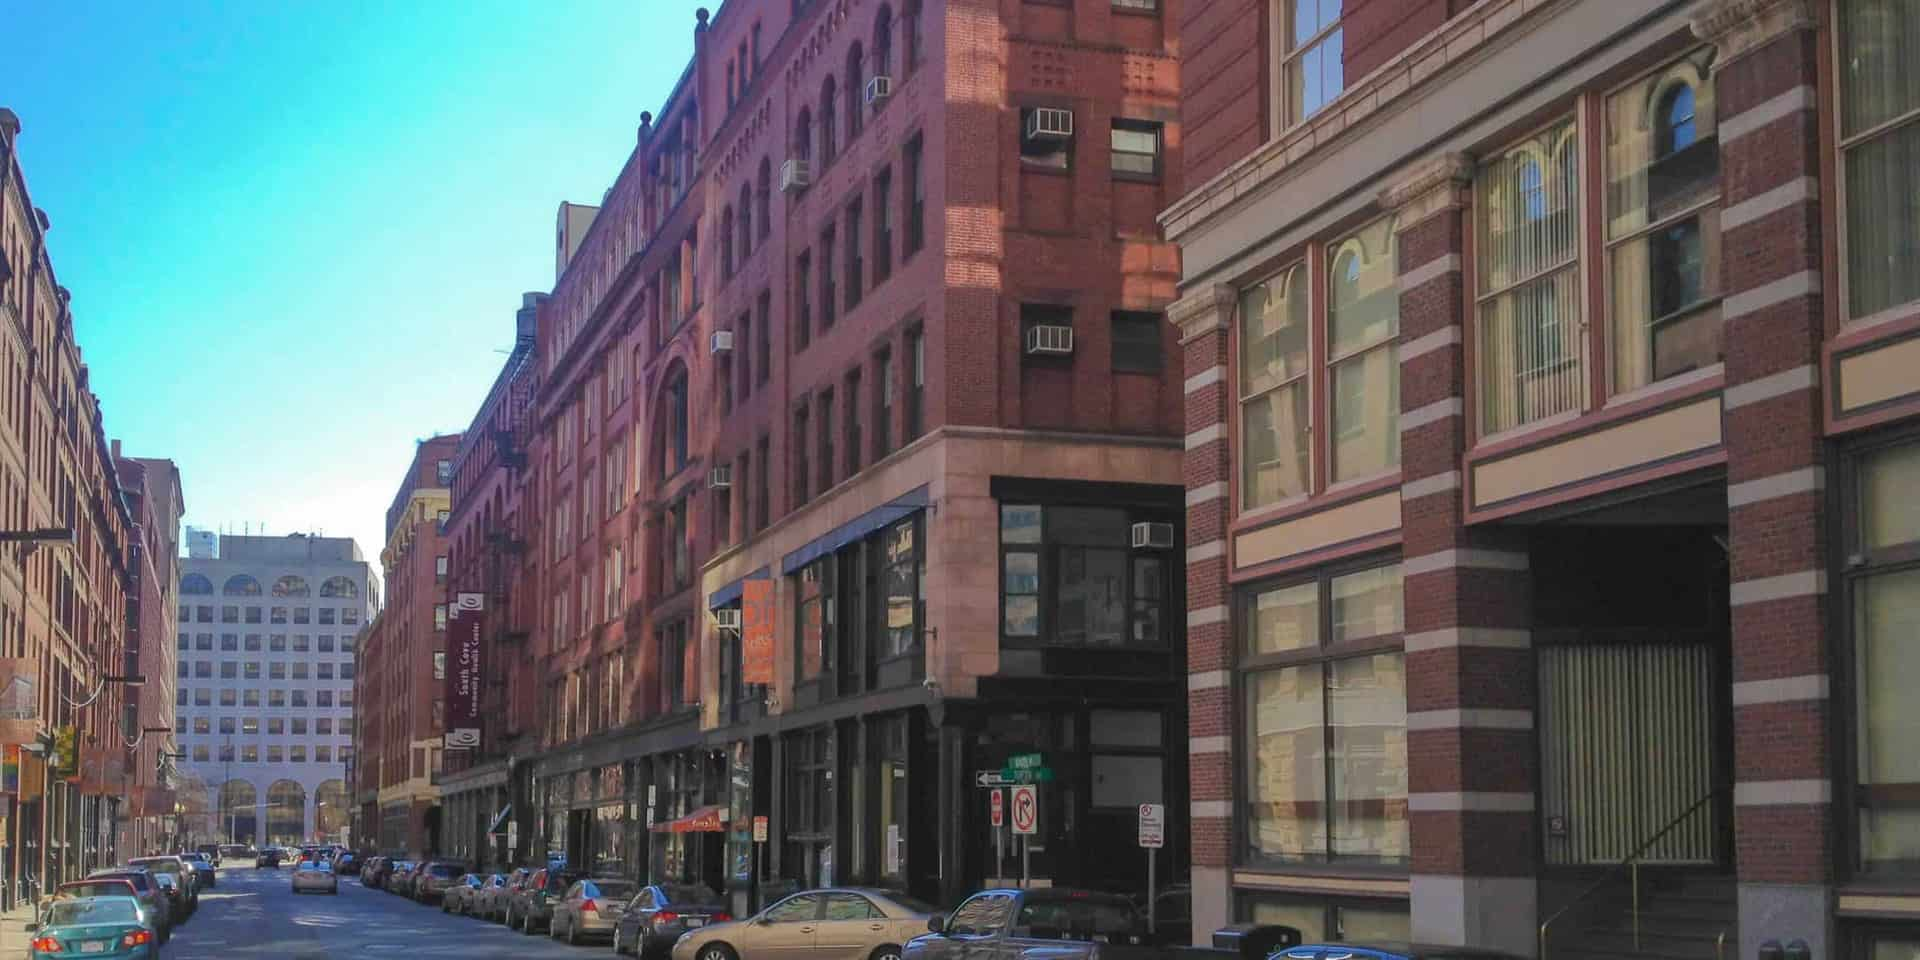 107 South Street Lofts